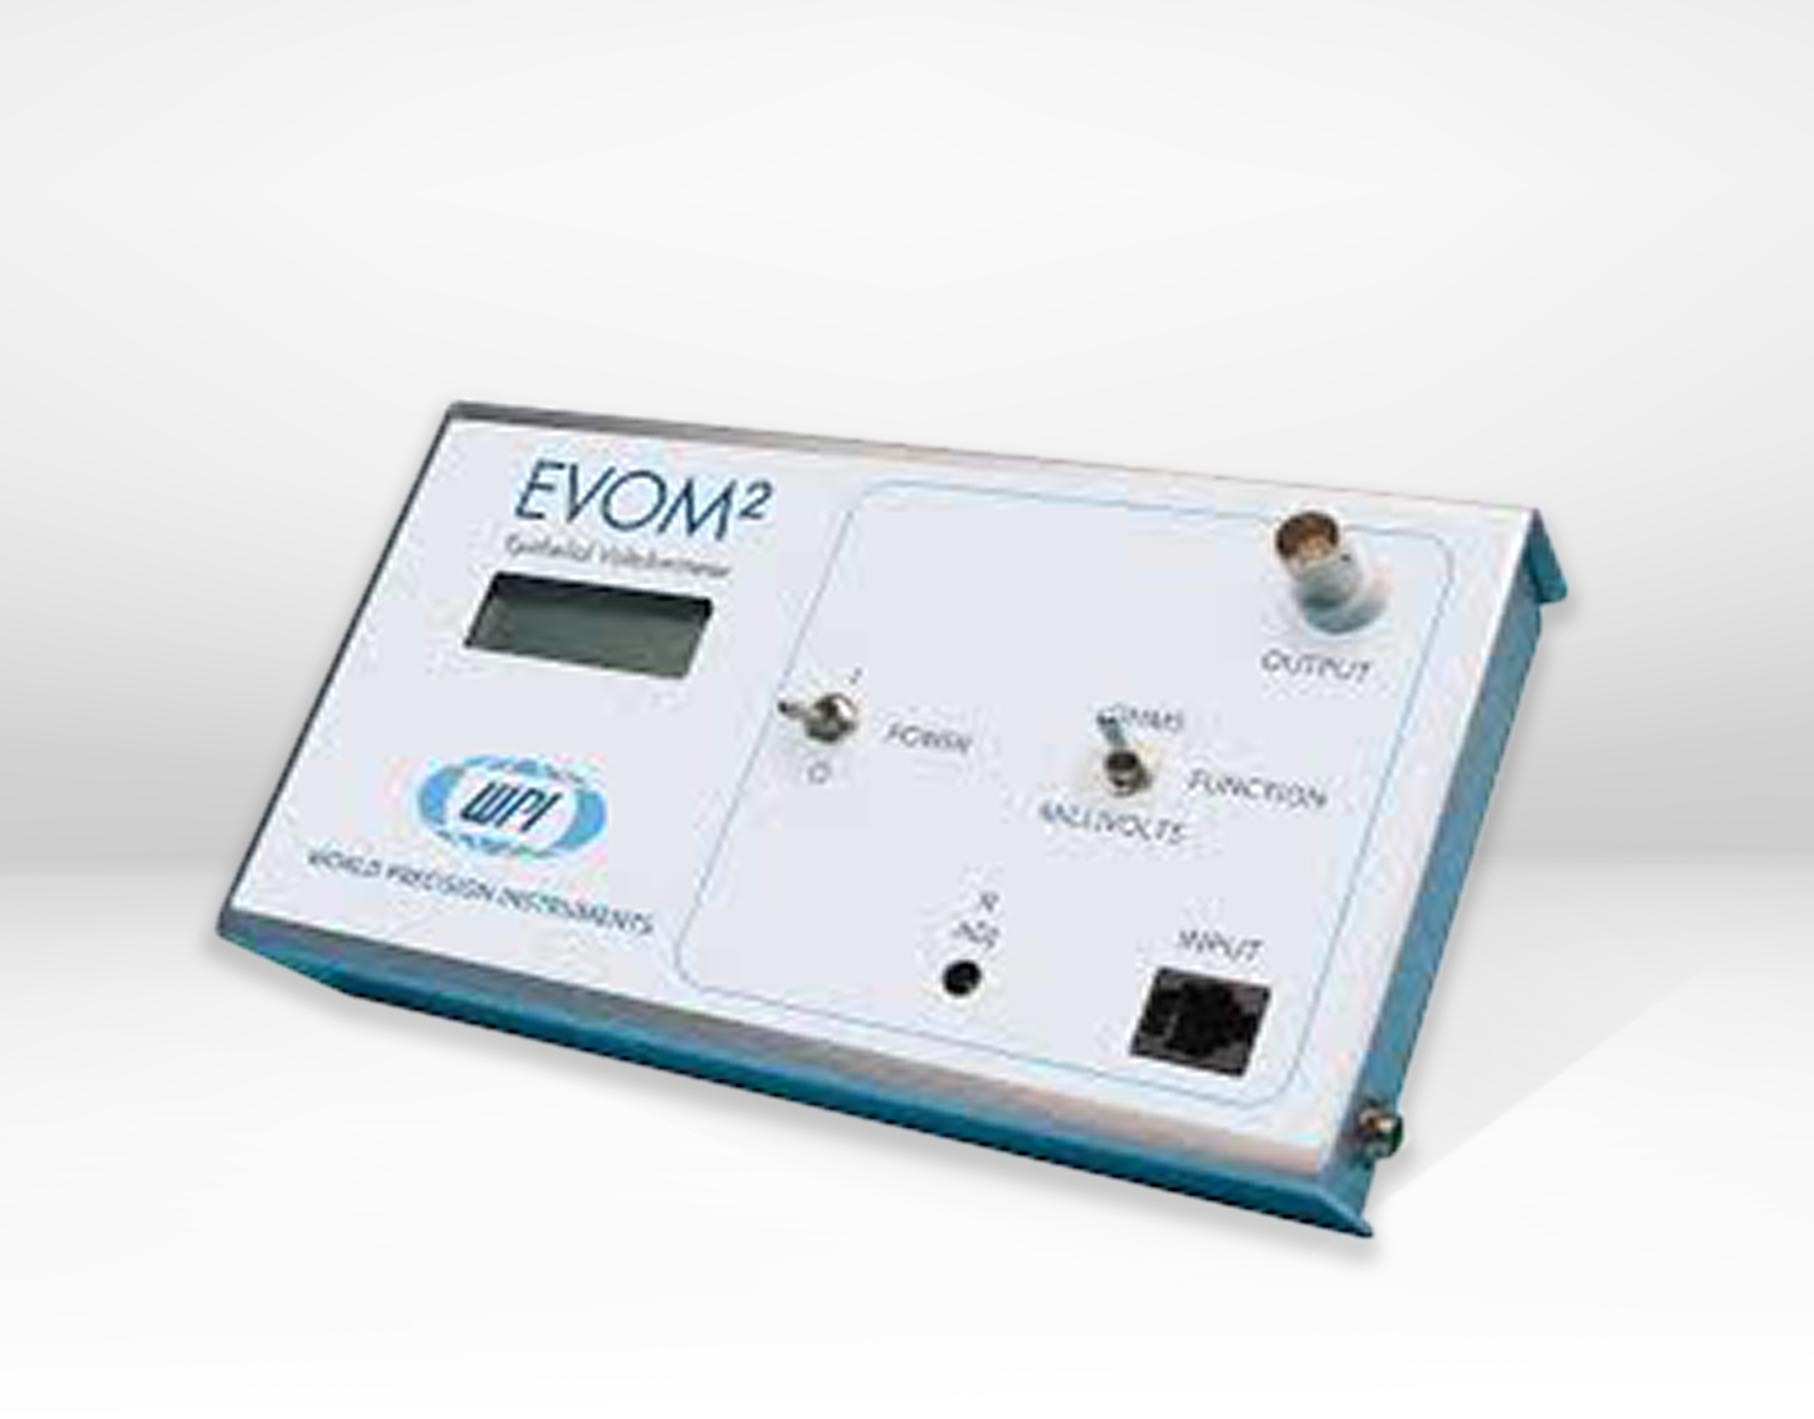 EVOM2 TEER Measurement